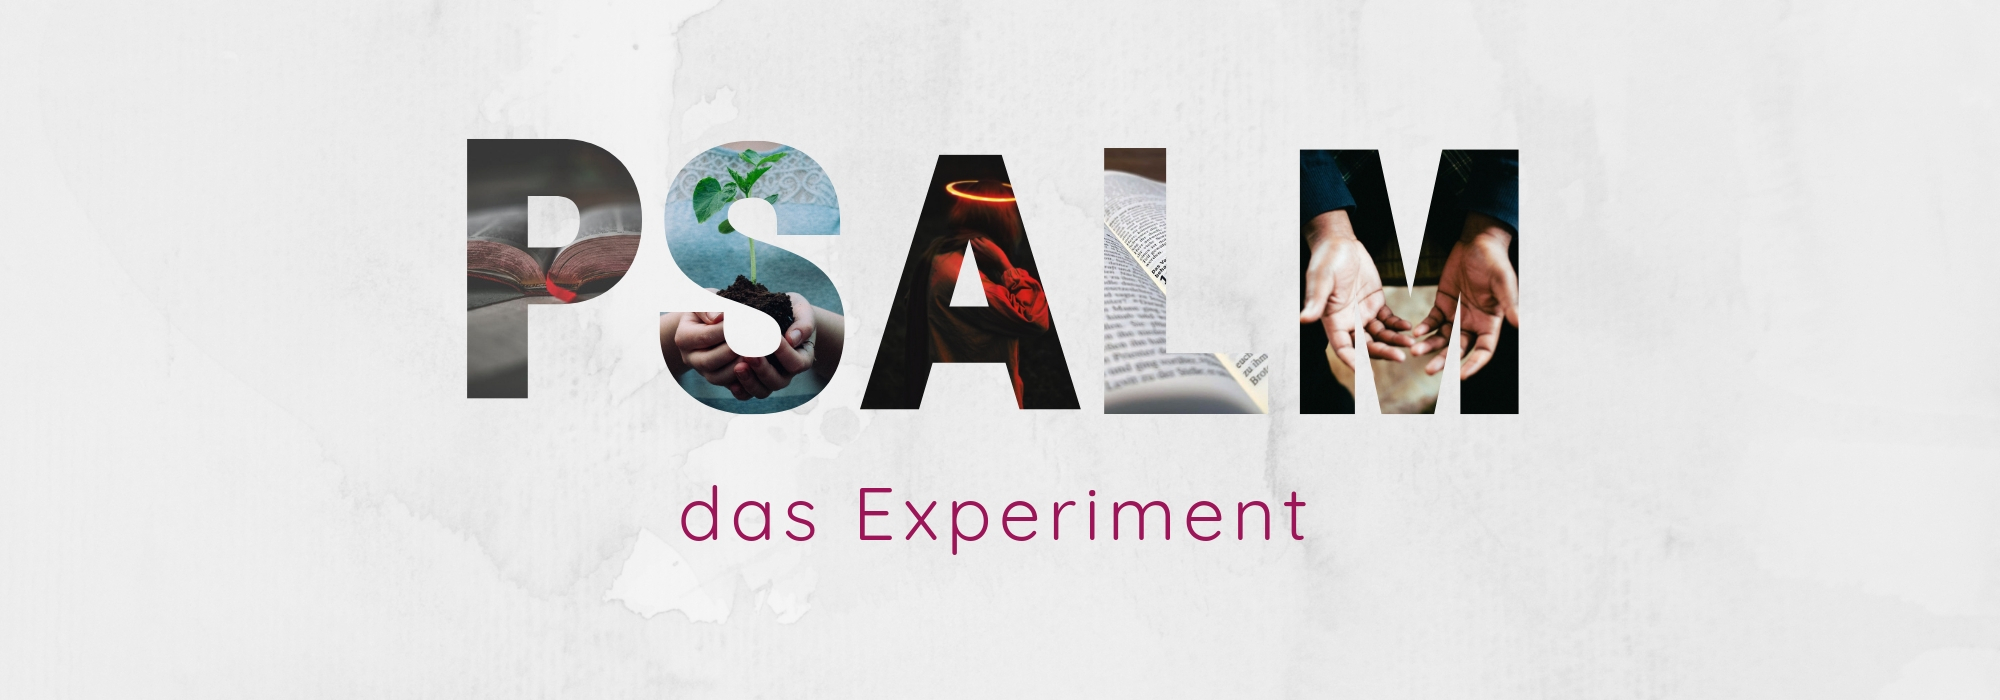 Psalm - das Experiment